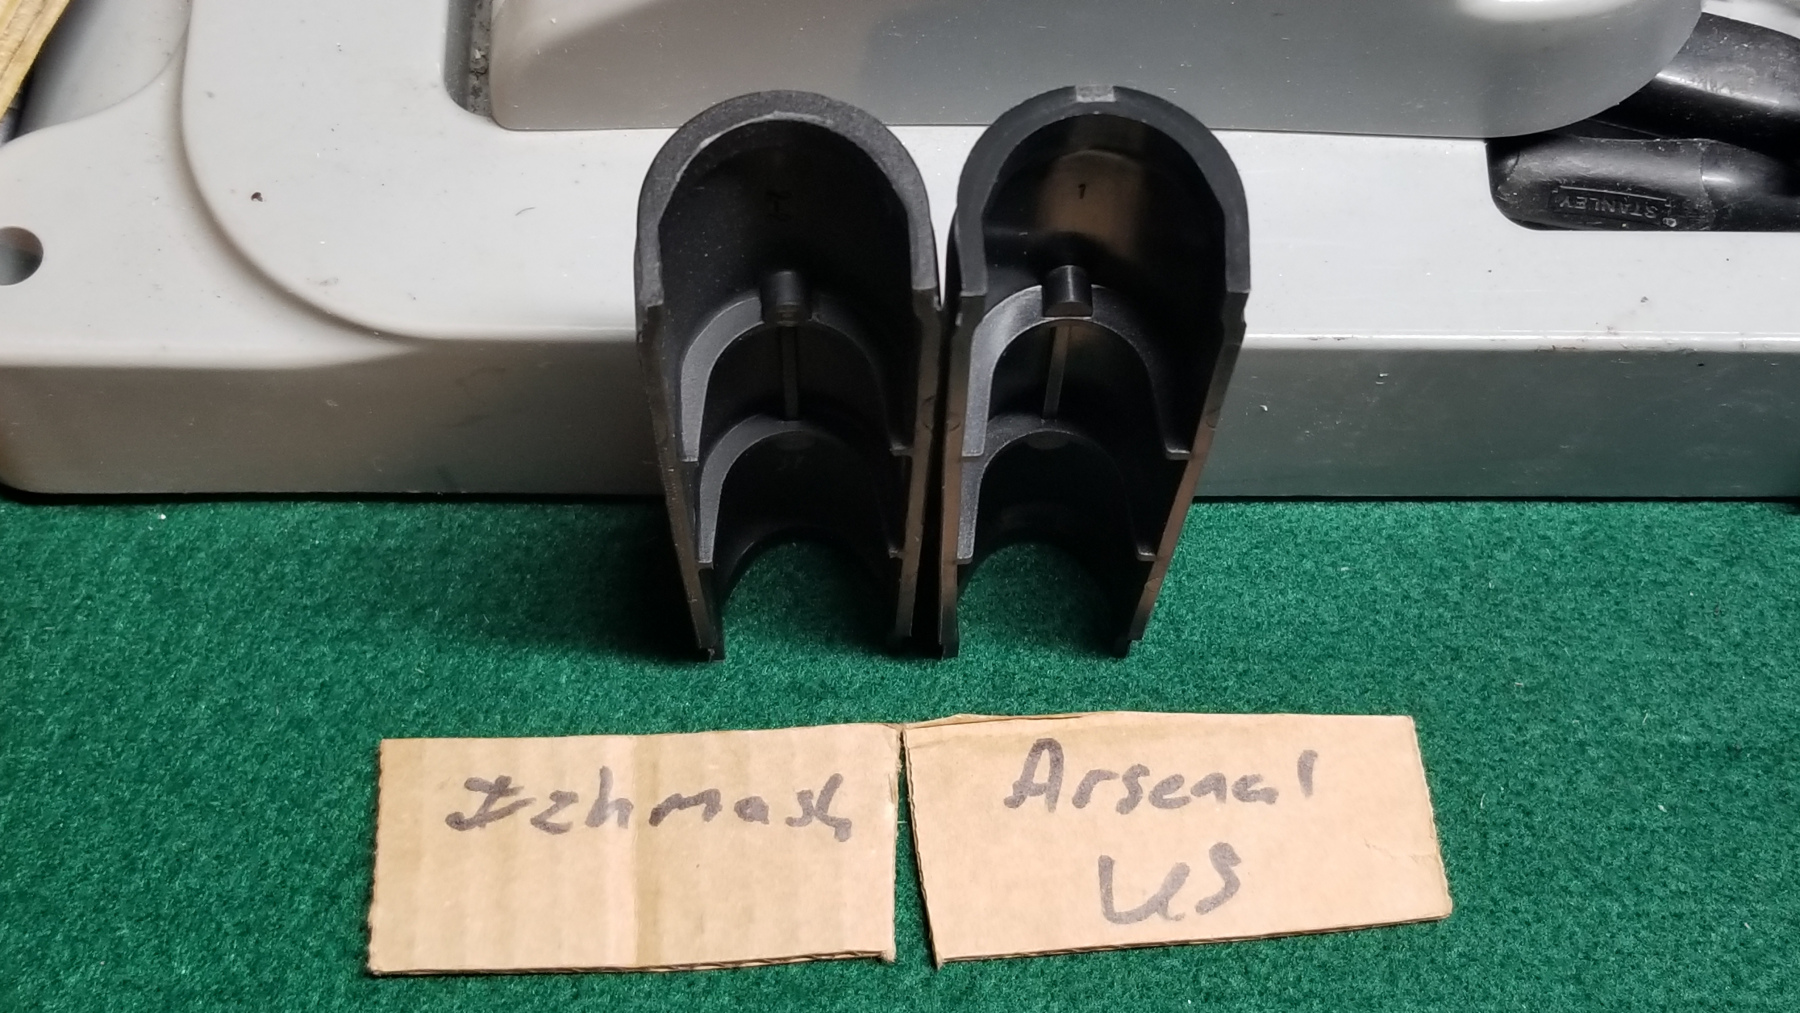 (L) Izhmash and (R) Arsenal US. izhmash has sebbled teture even on the back surface. Arsenal US is smooth.